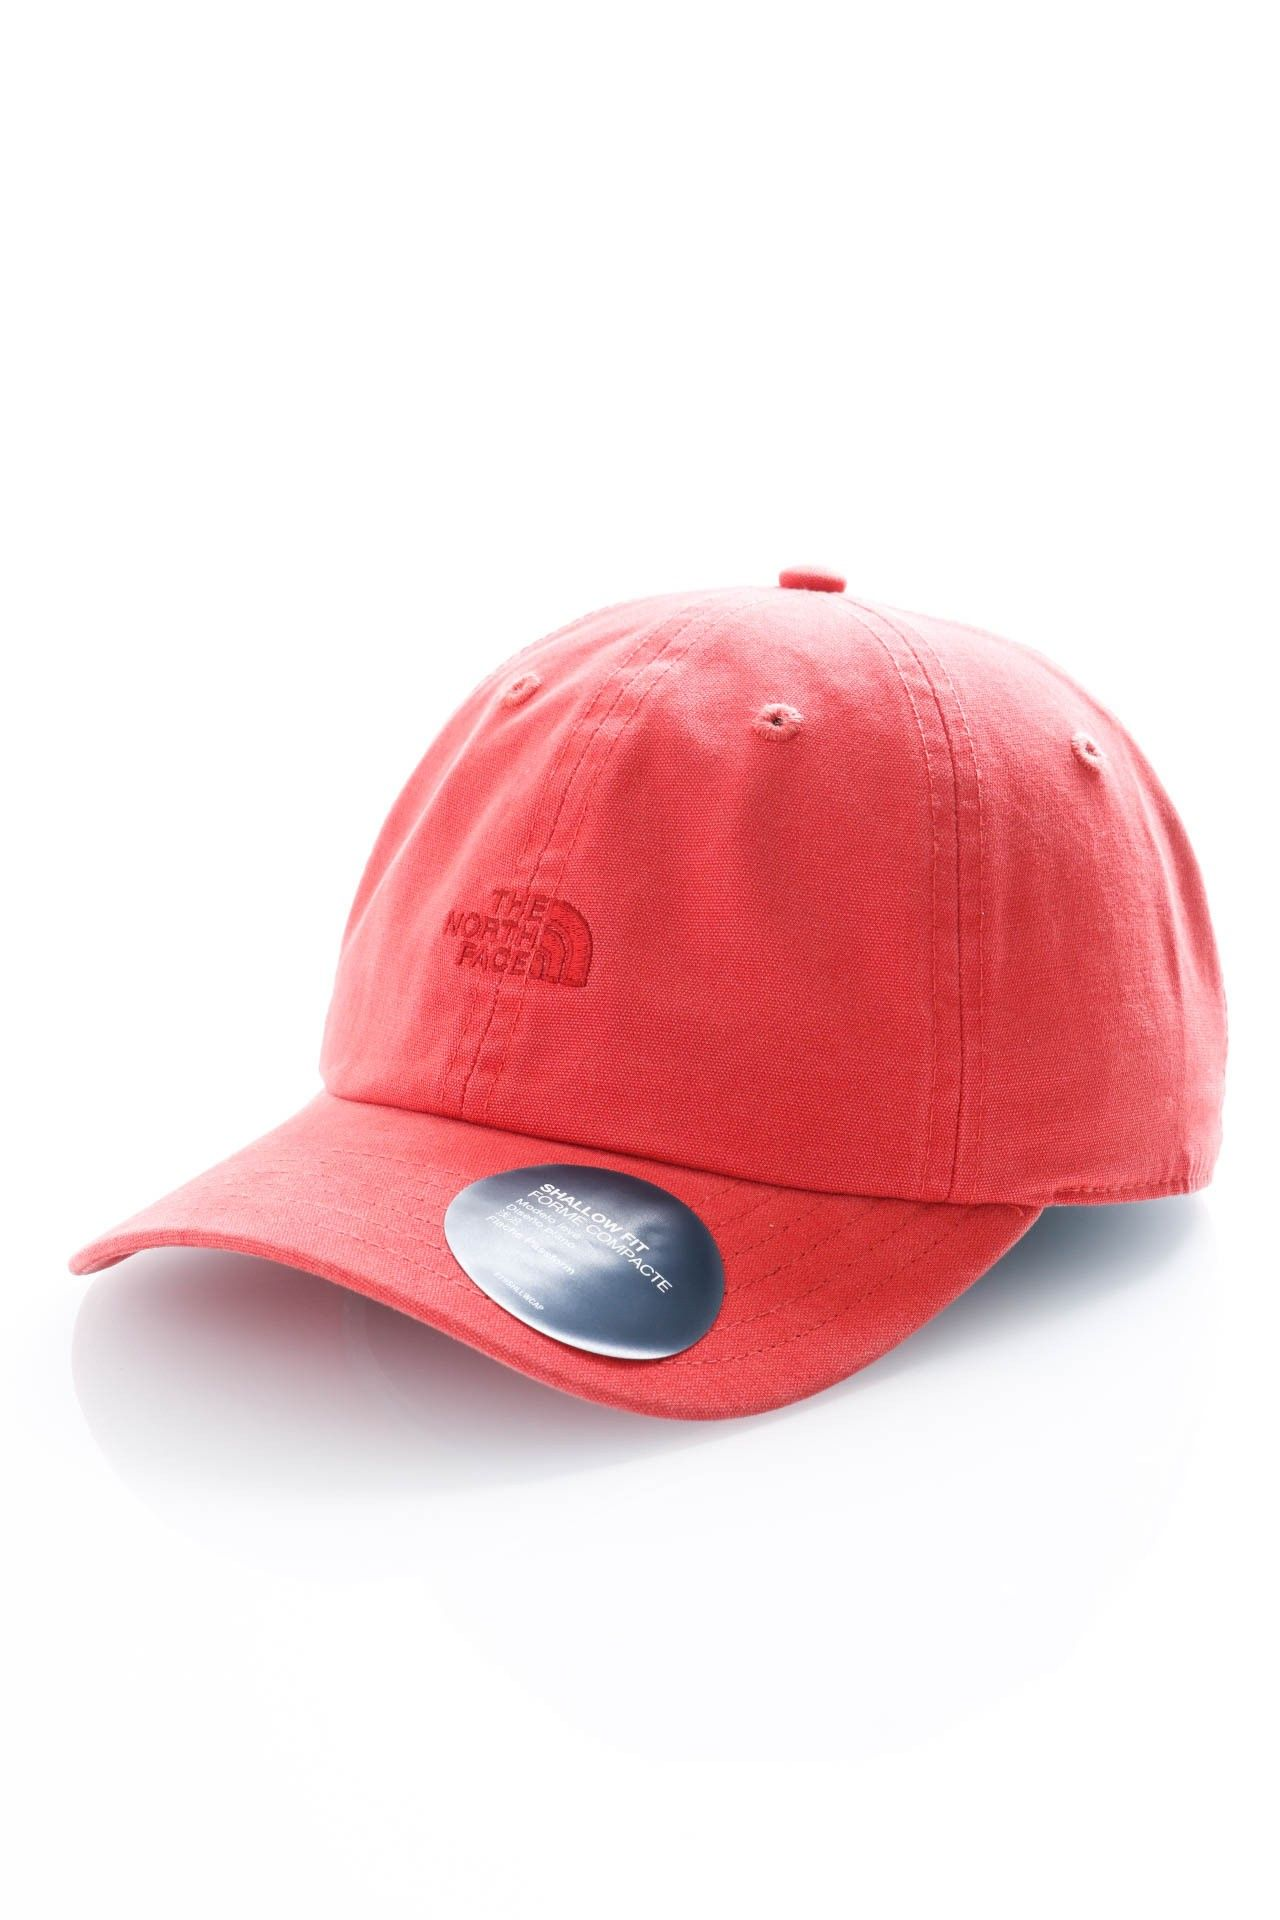 Afbeelding van The North Face Dad Cap Washed Norm Hat Sunbaked Red NF0A3FKNPKB